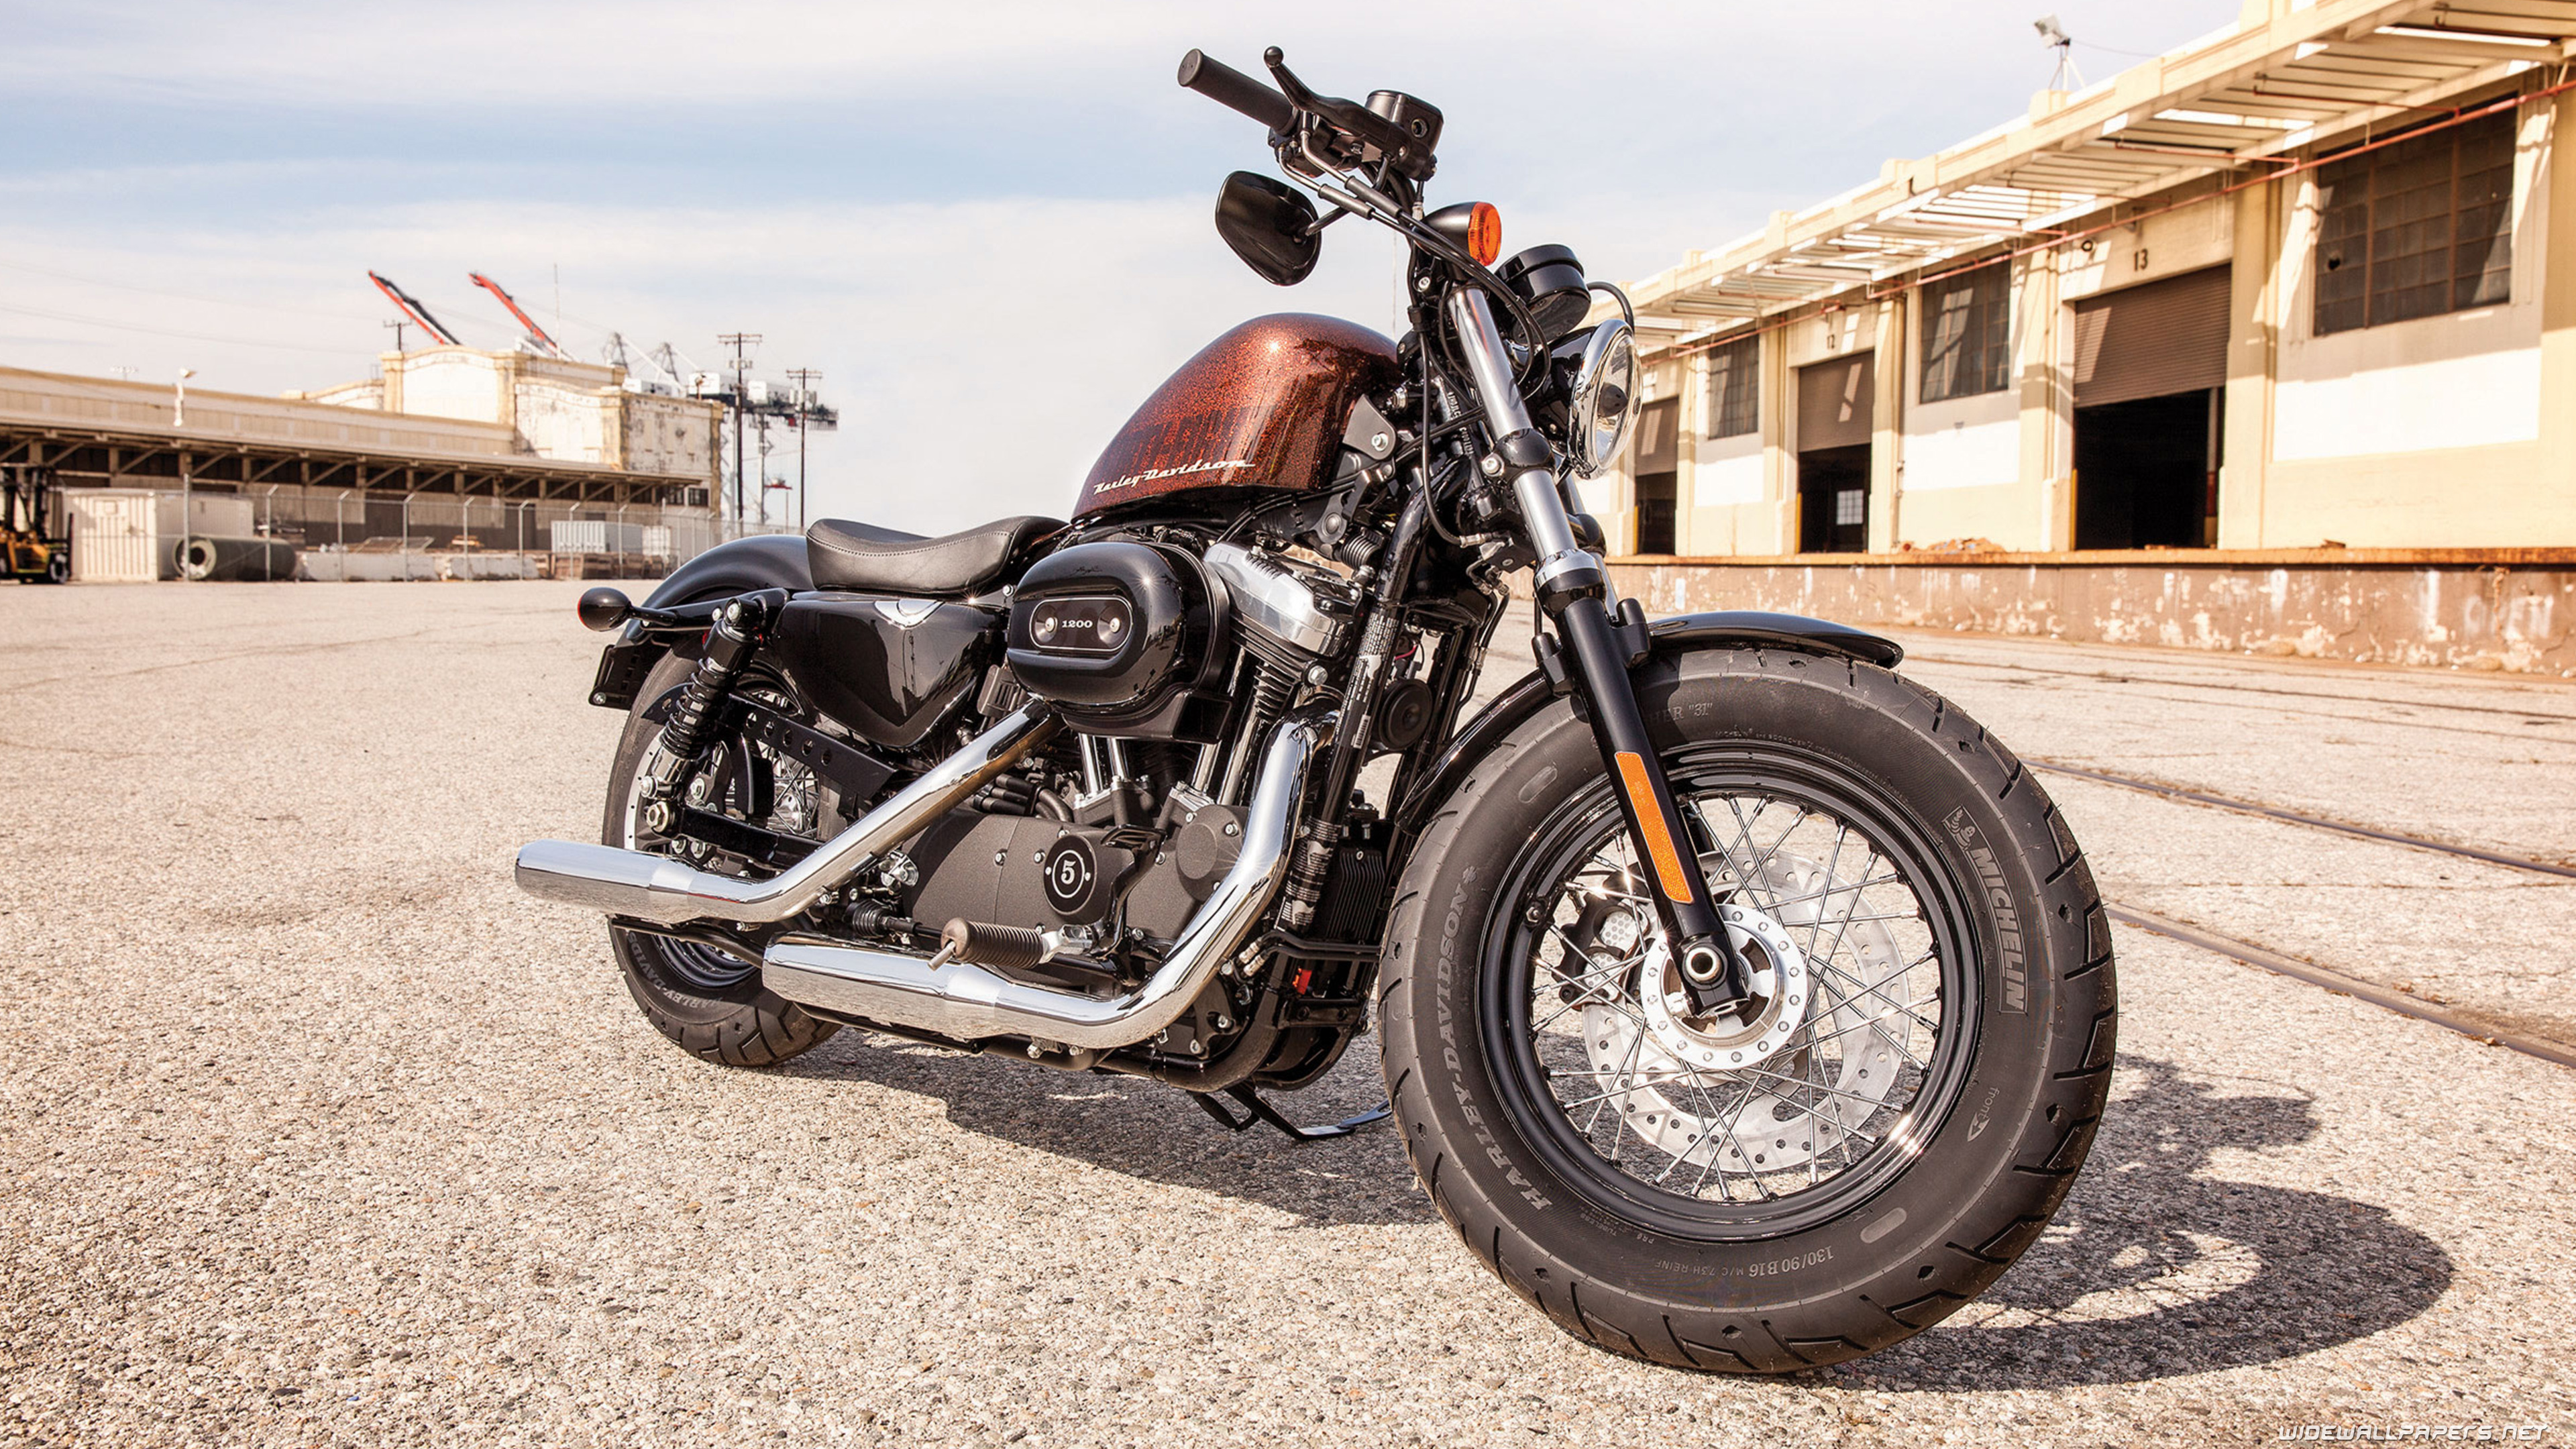 Harley Davidson Sportster 1200X Forty Eight Motorcycle Wallpapers 4K Ultra HD